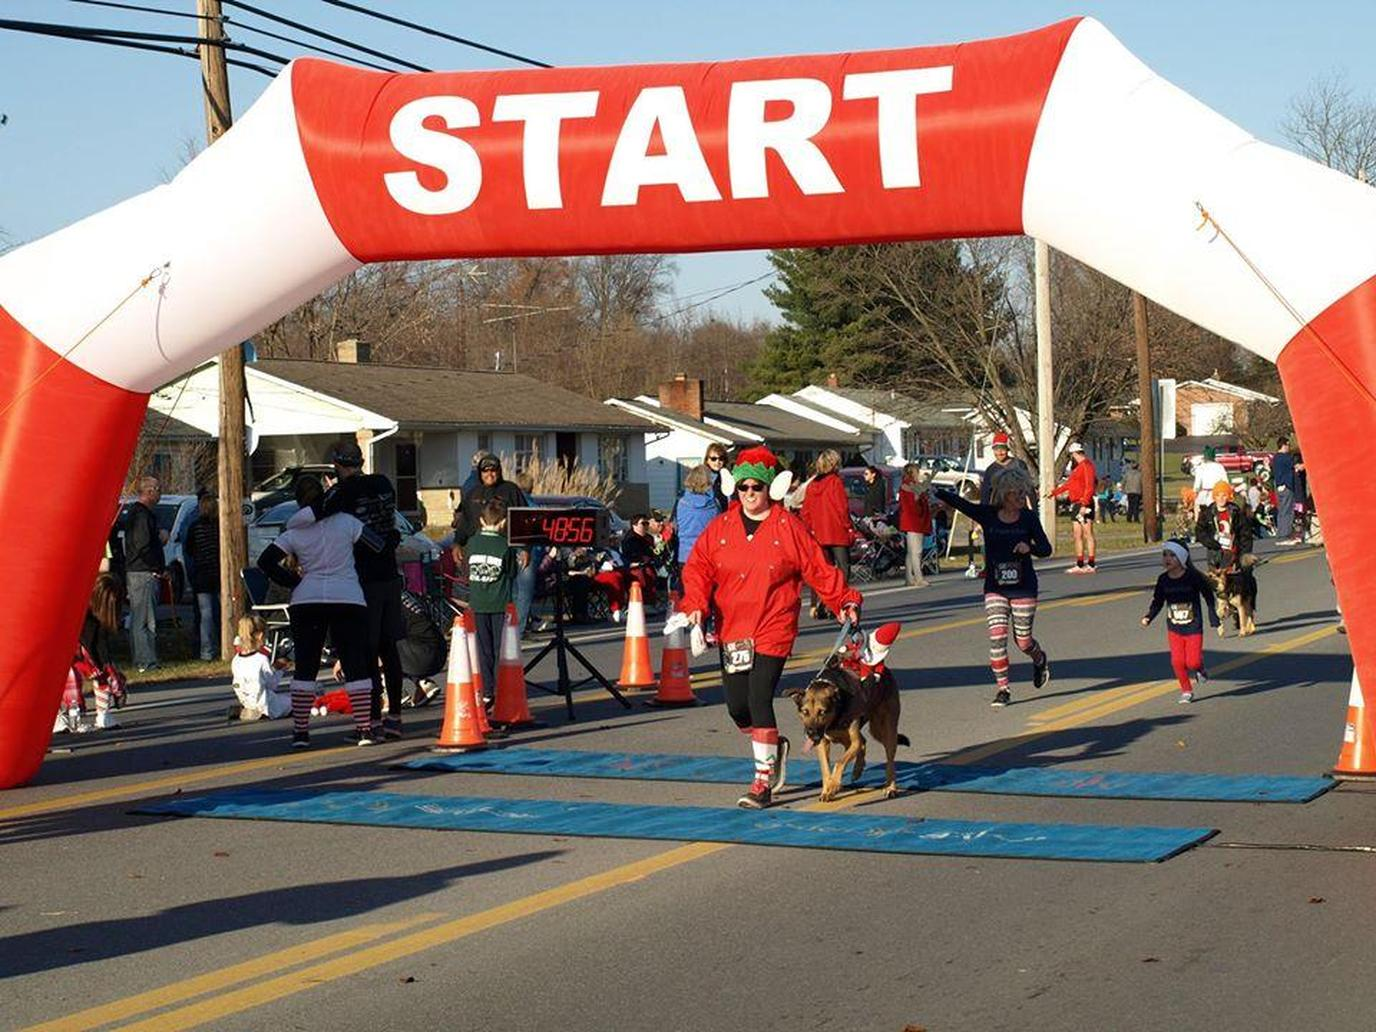 A Woman and Dog Cross the Finish Line at a Pet-Friendly Christmas Race in Inwood, West Virginia.